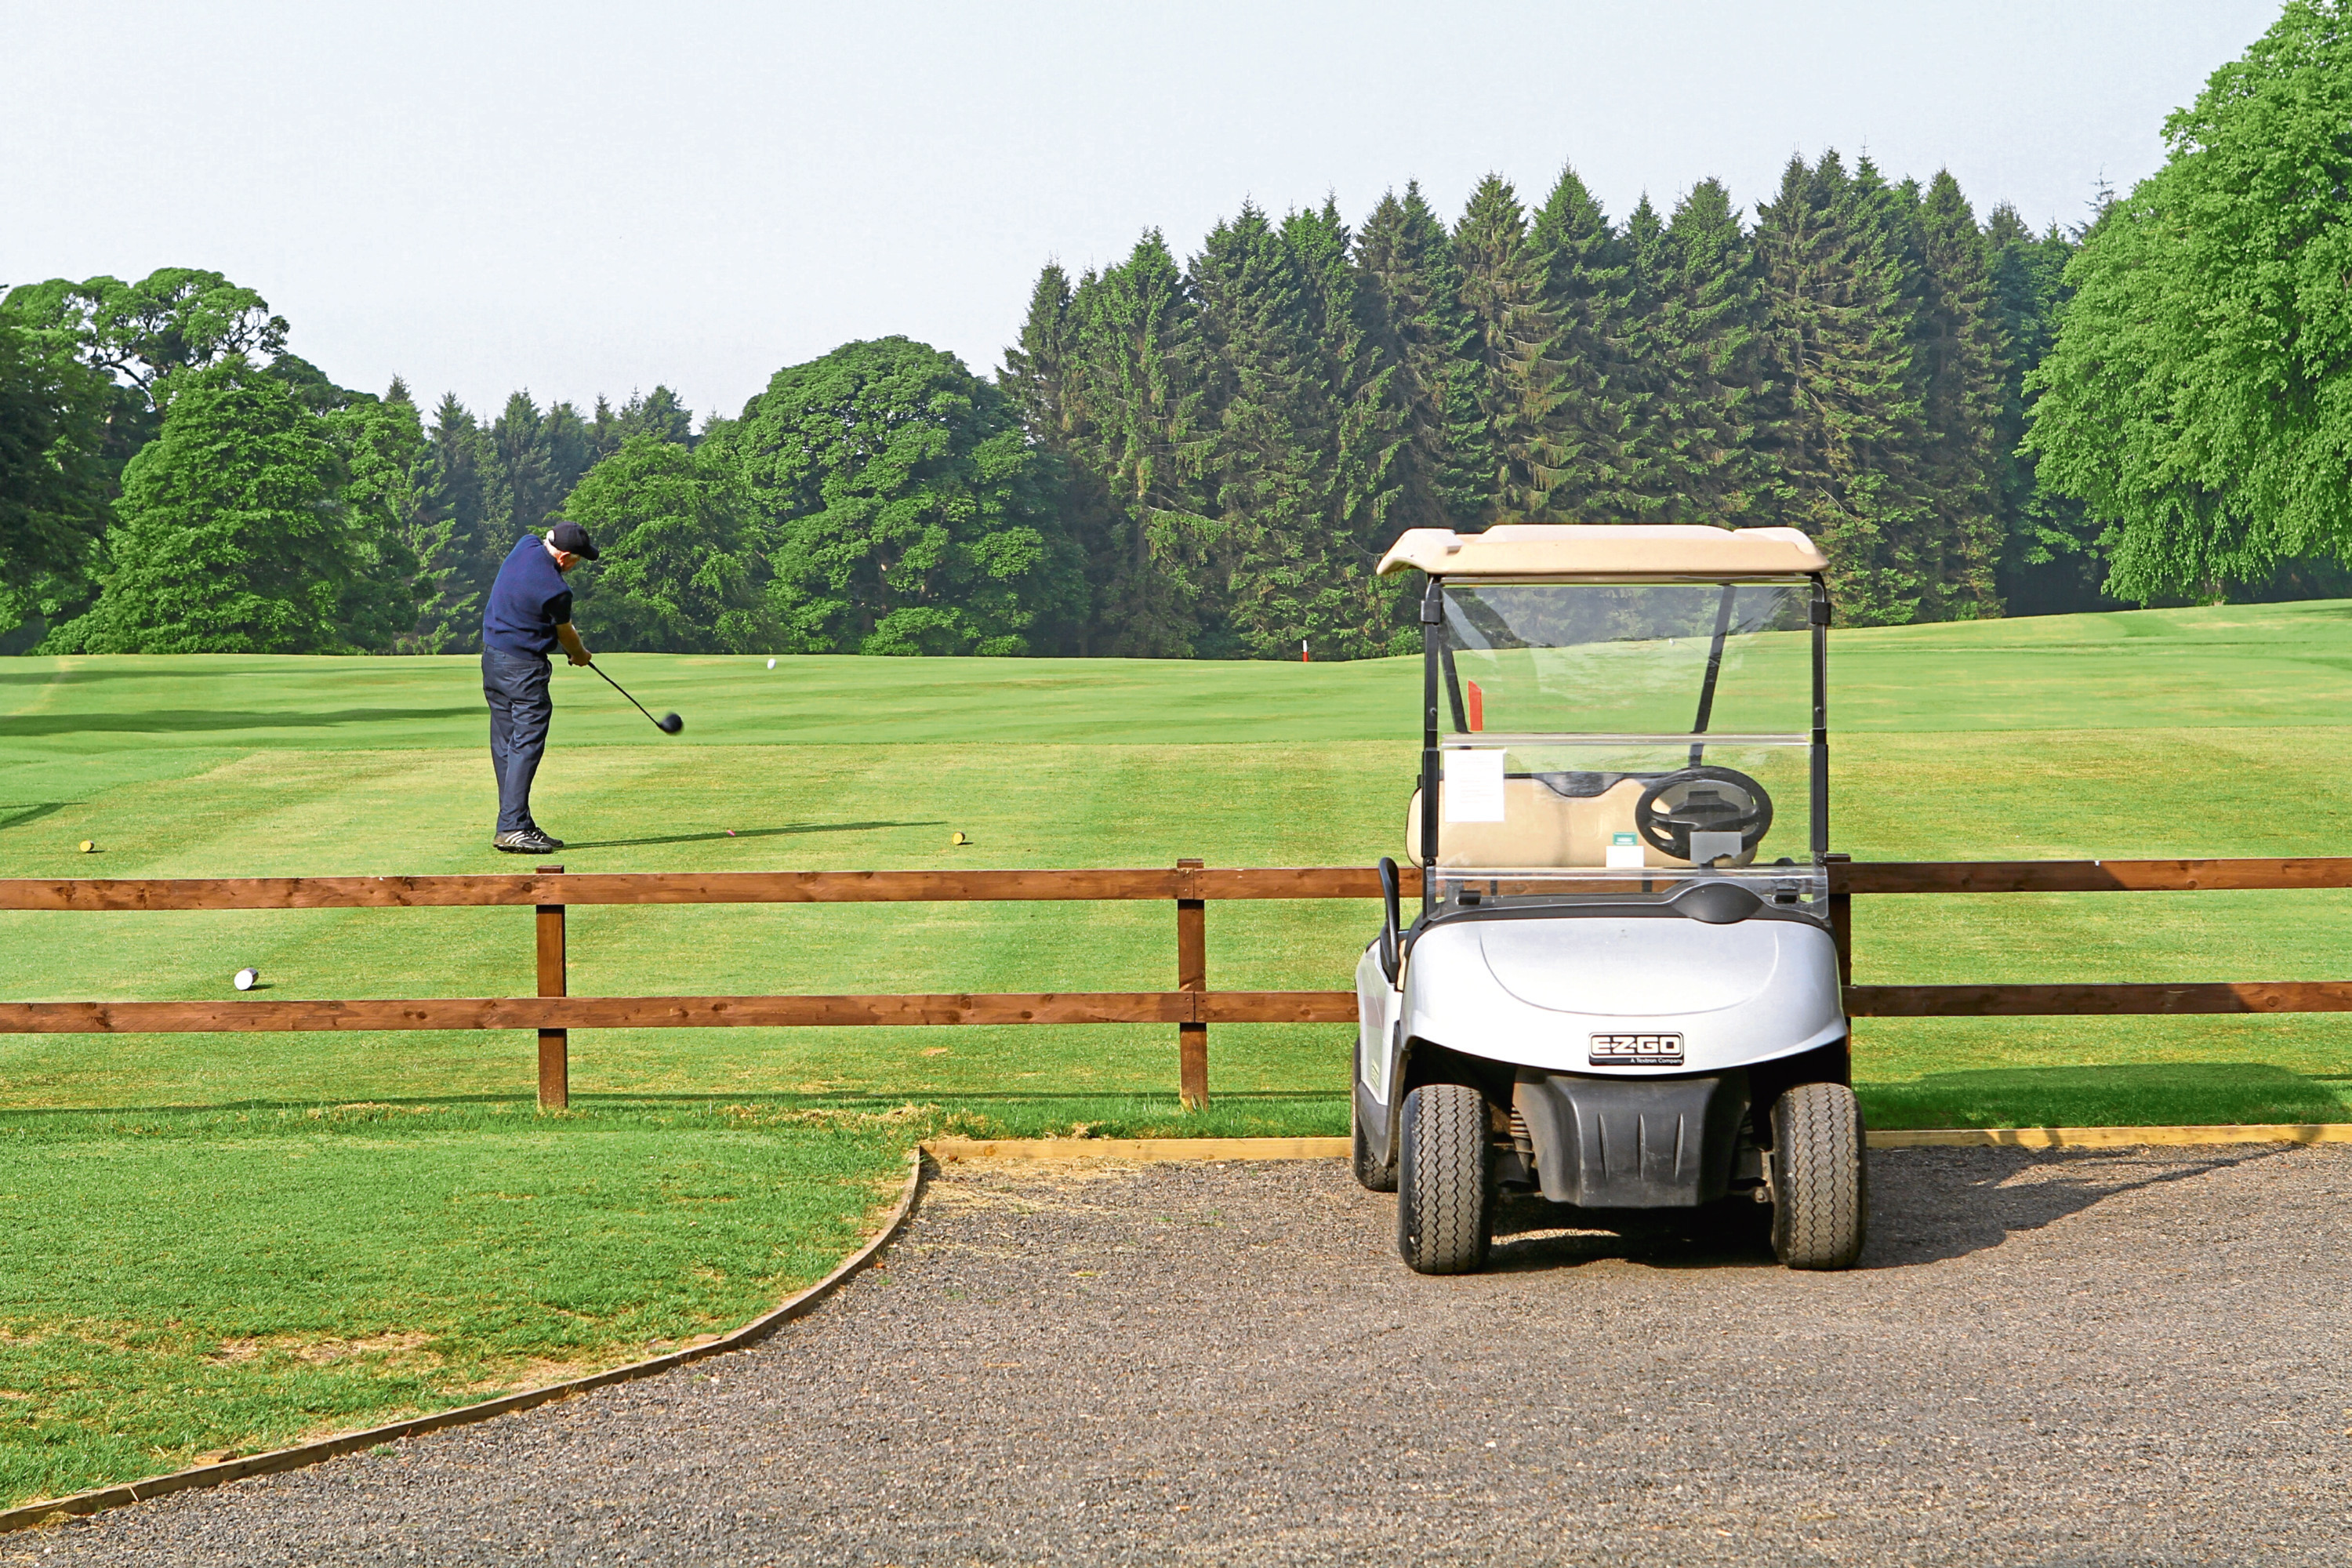 Camperdown Golf Course (stock image).